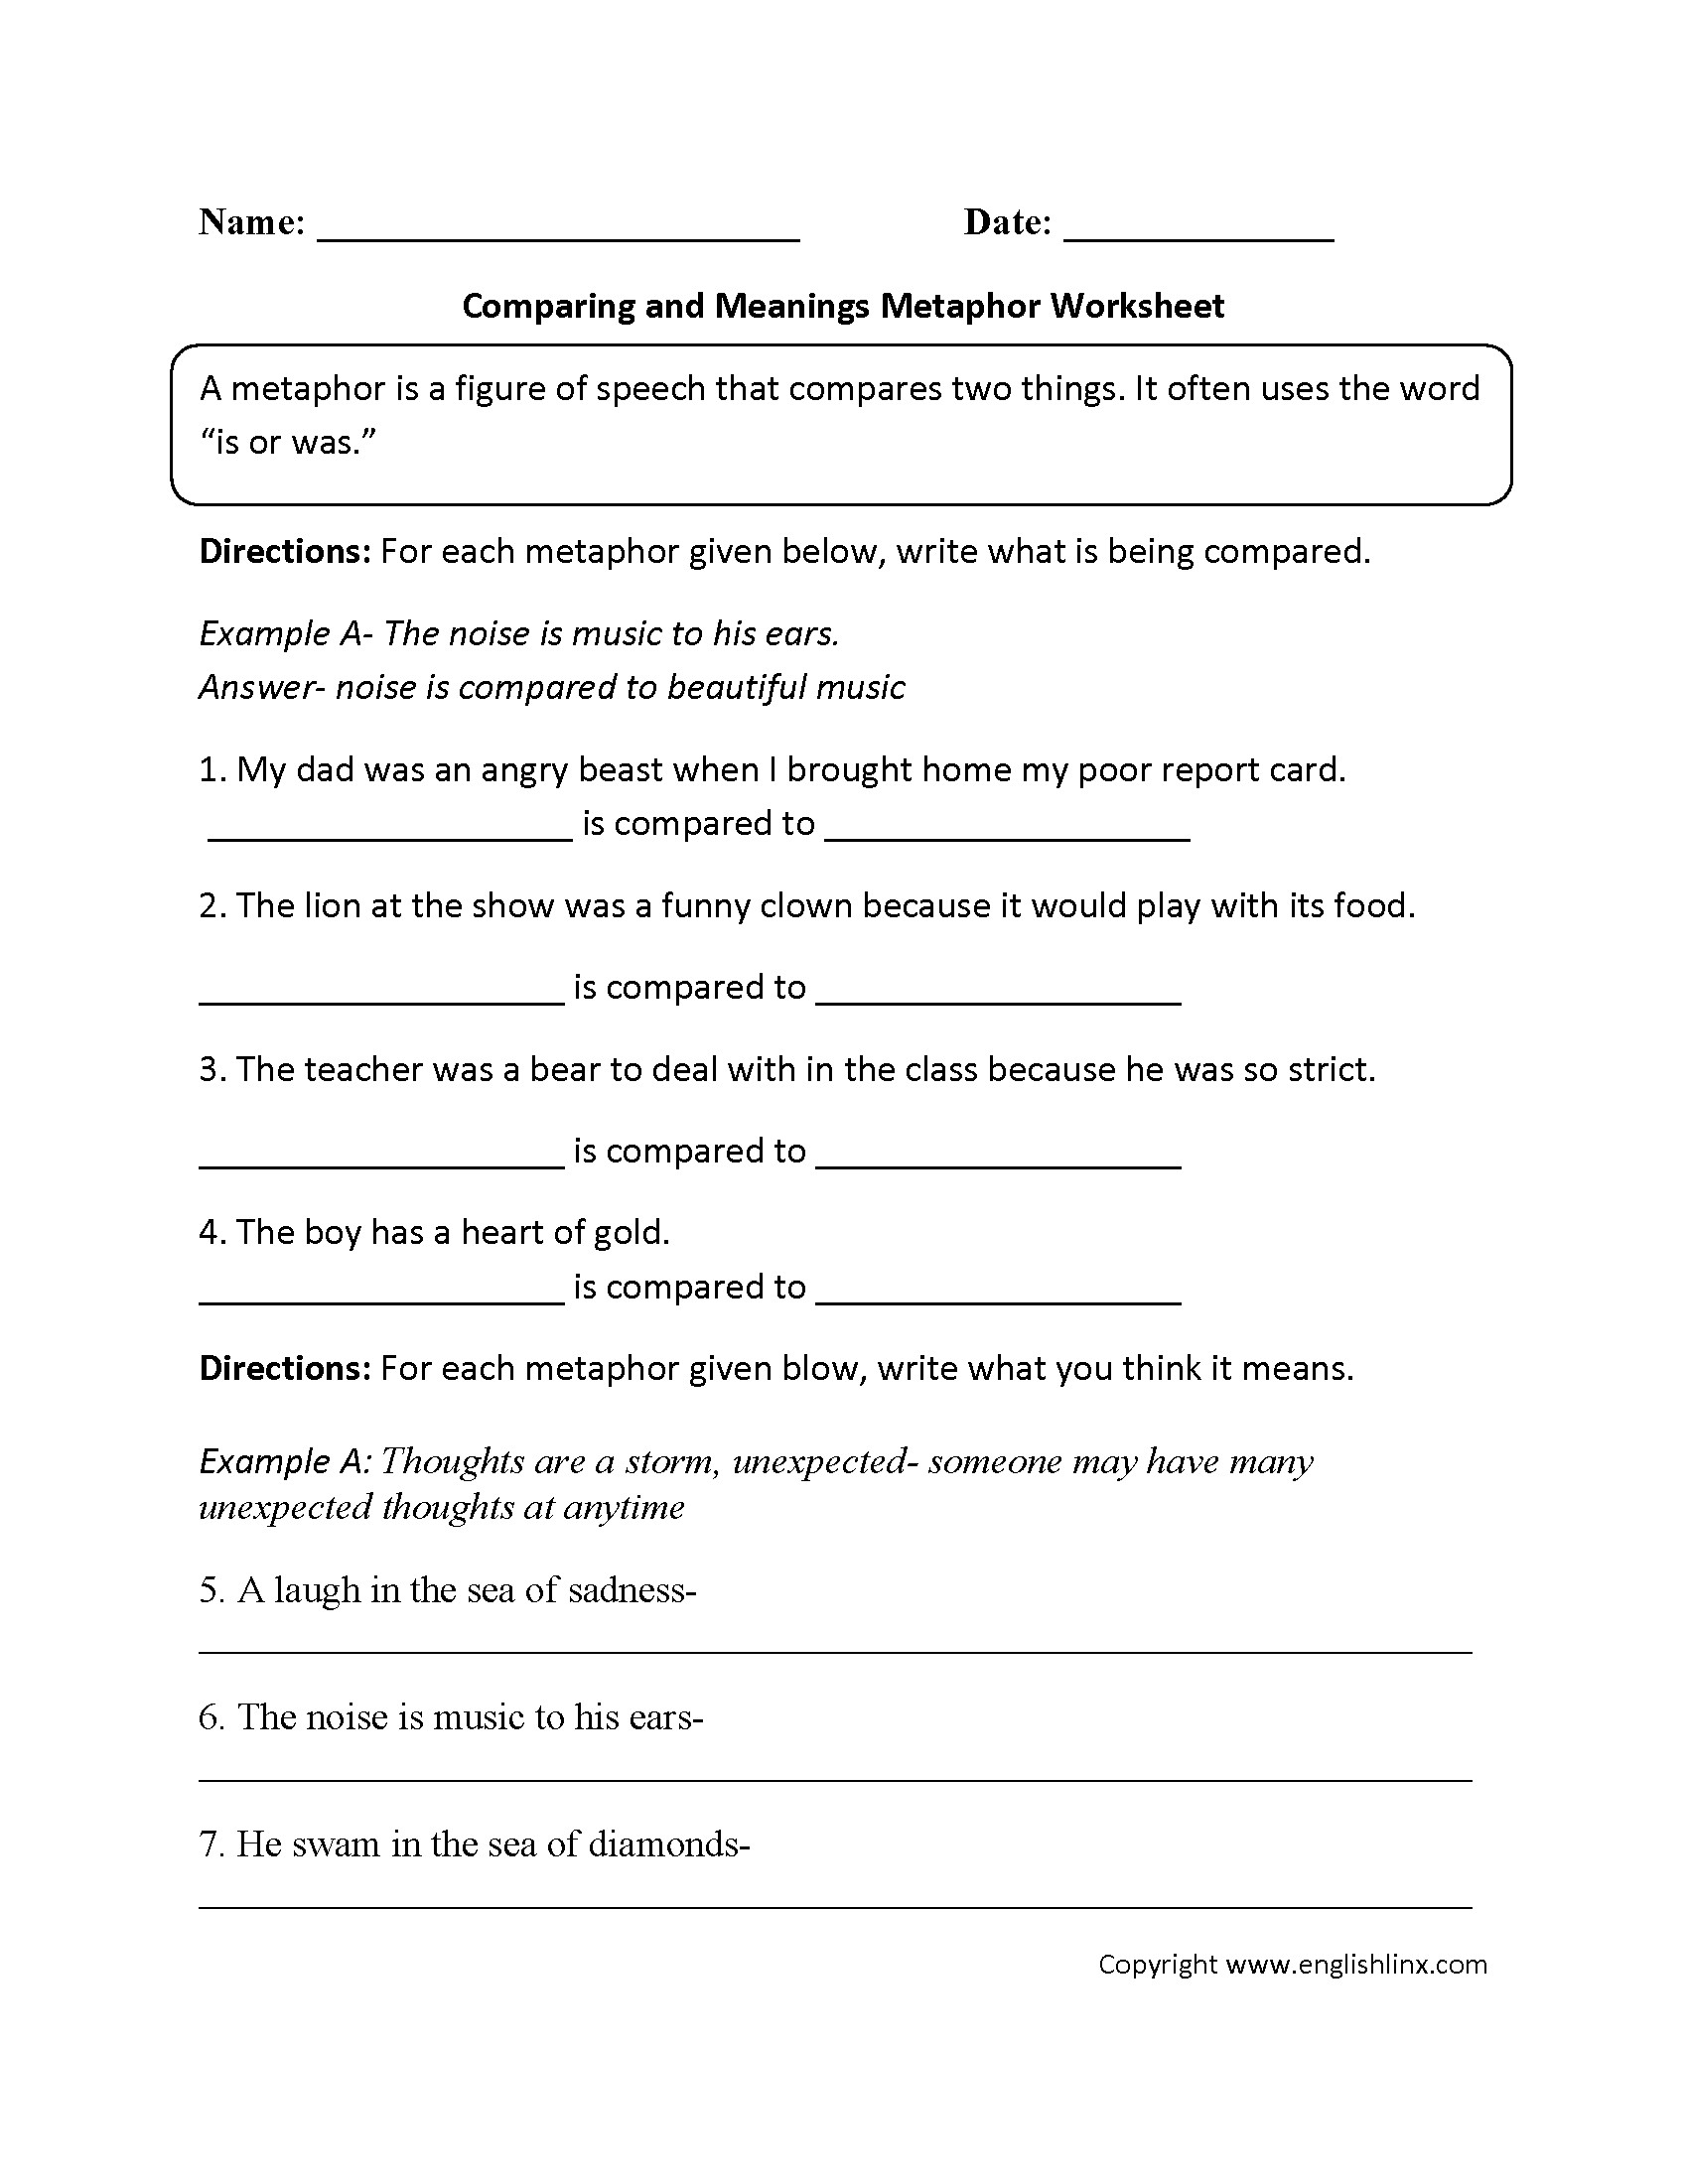 Metaphor Worksheet Middle School Simile Metaphor Worksheet Grade 5